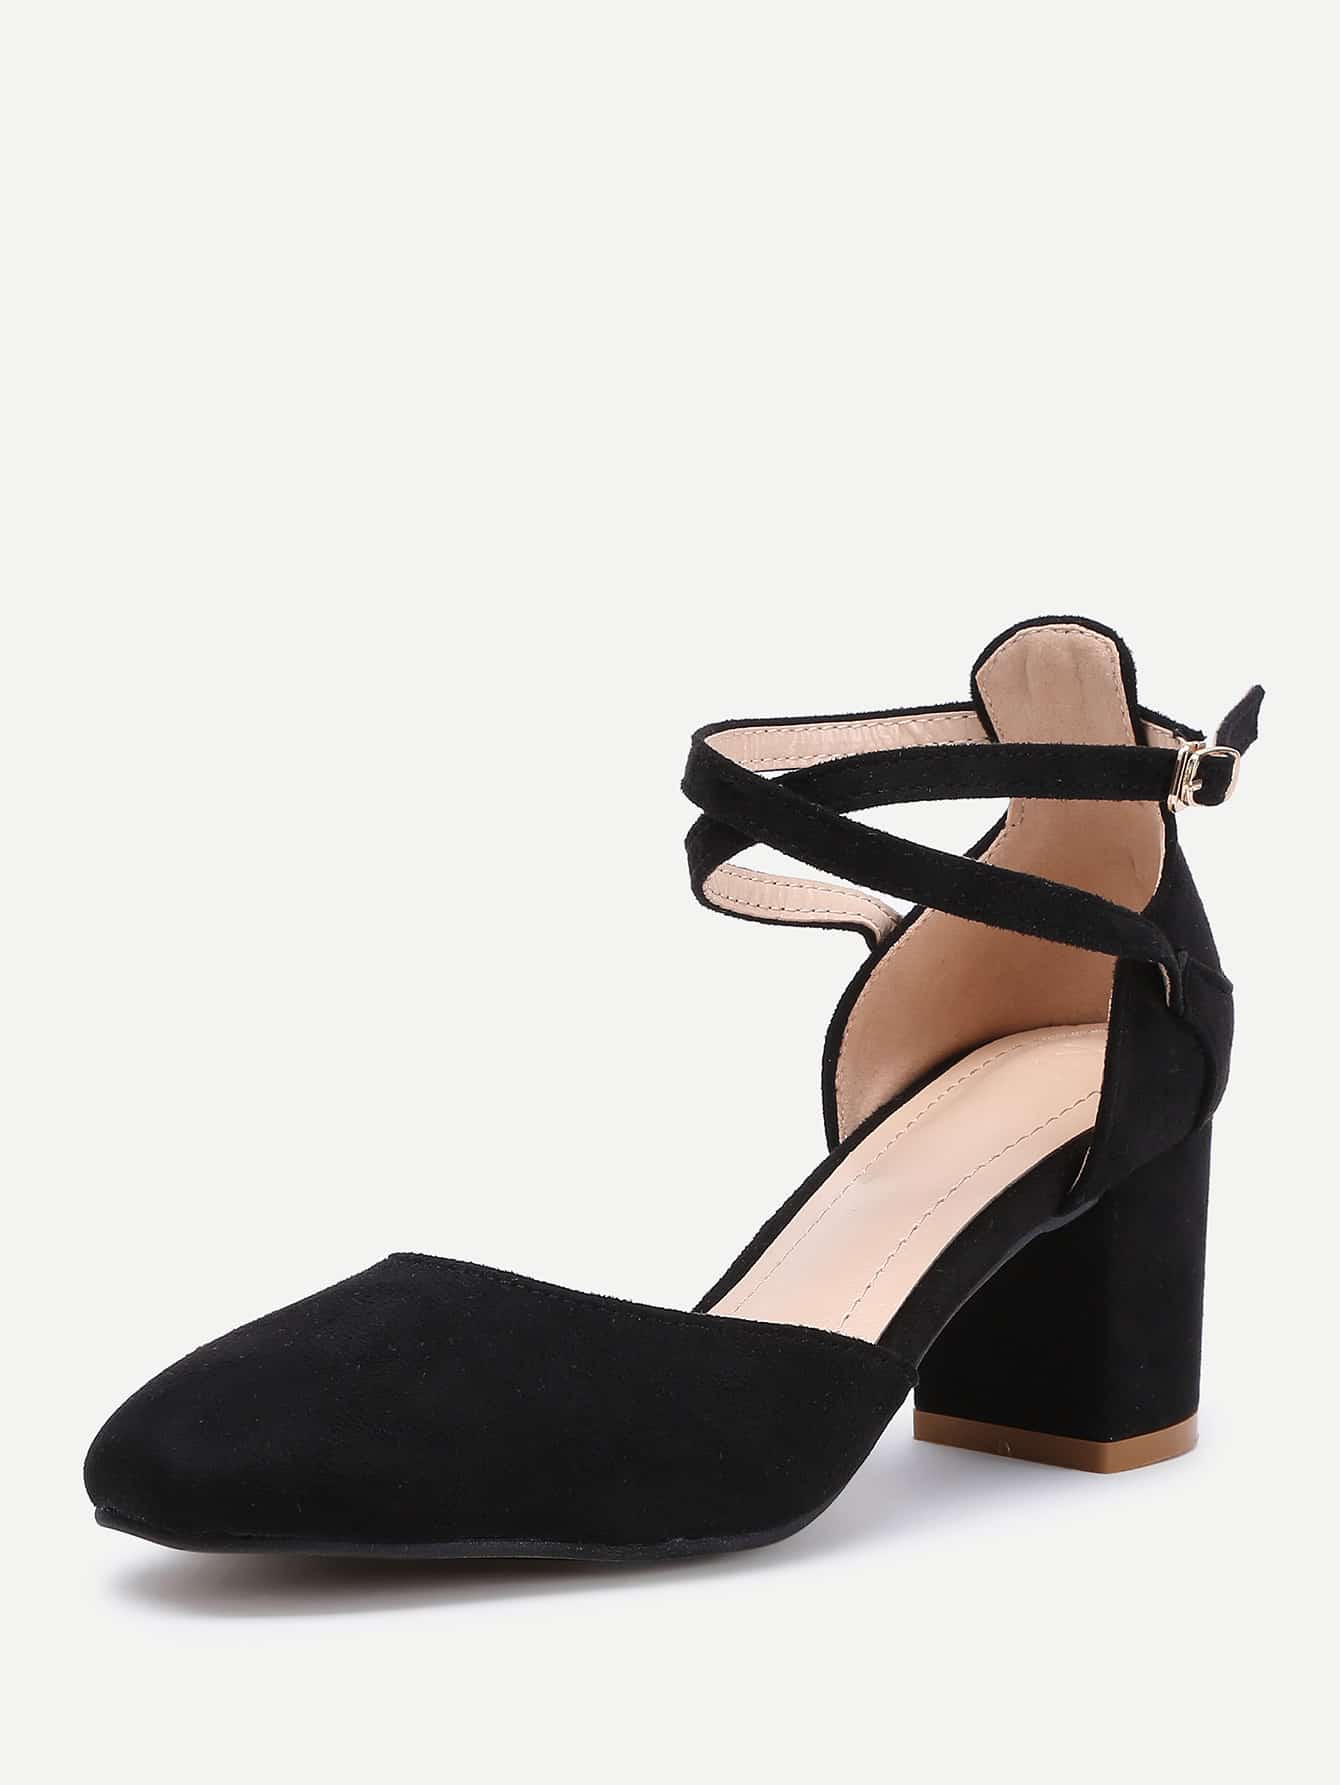 high heel shoe chair value city chicco polly pointed toe ankle strap block heels shein sheinside